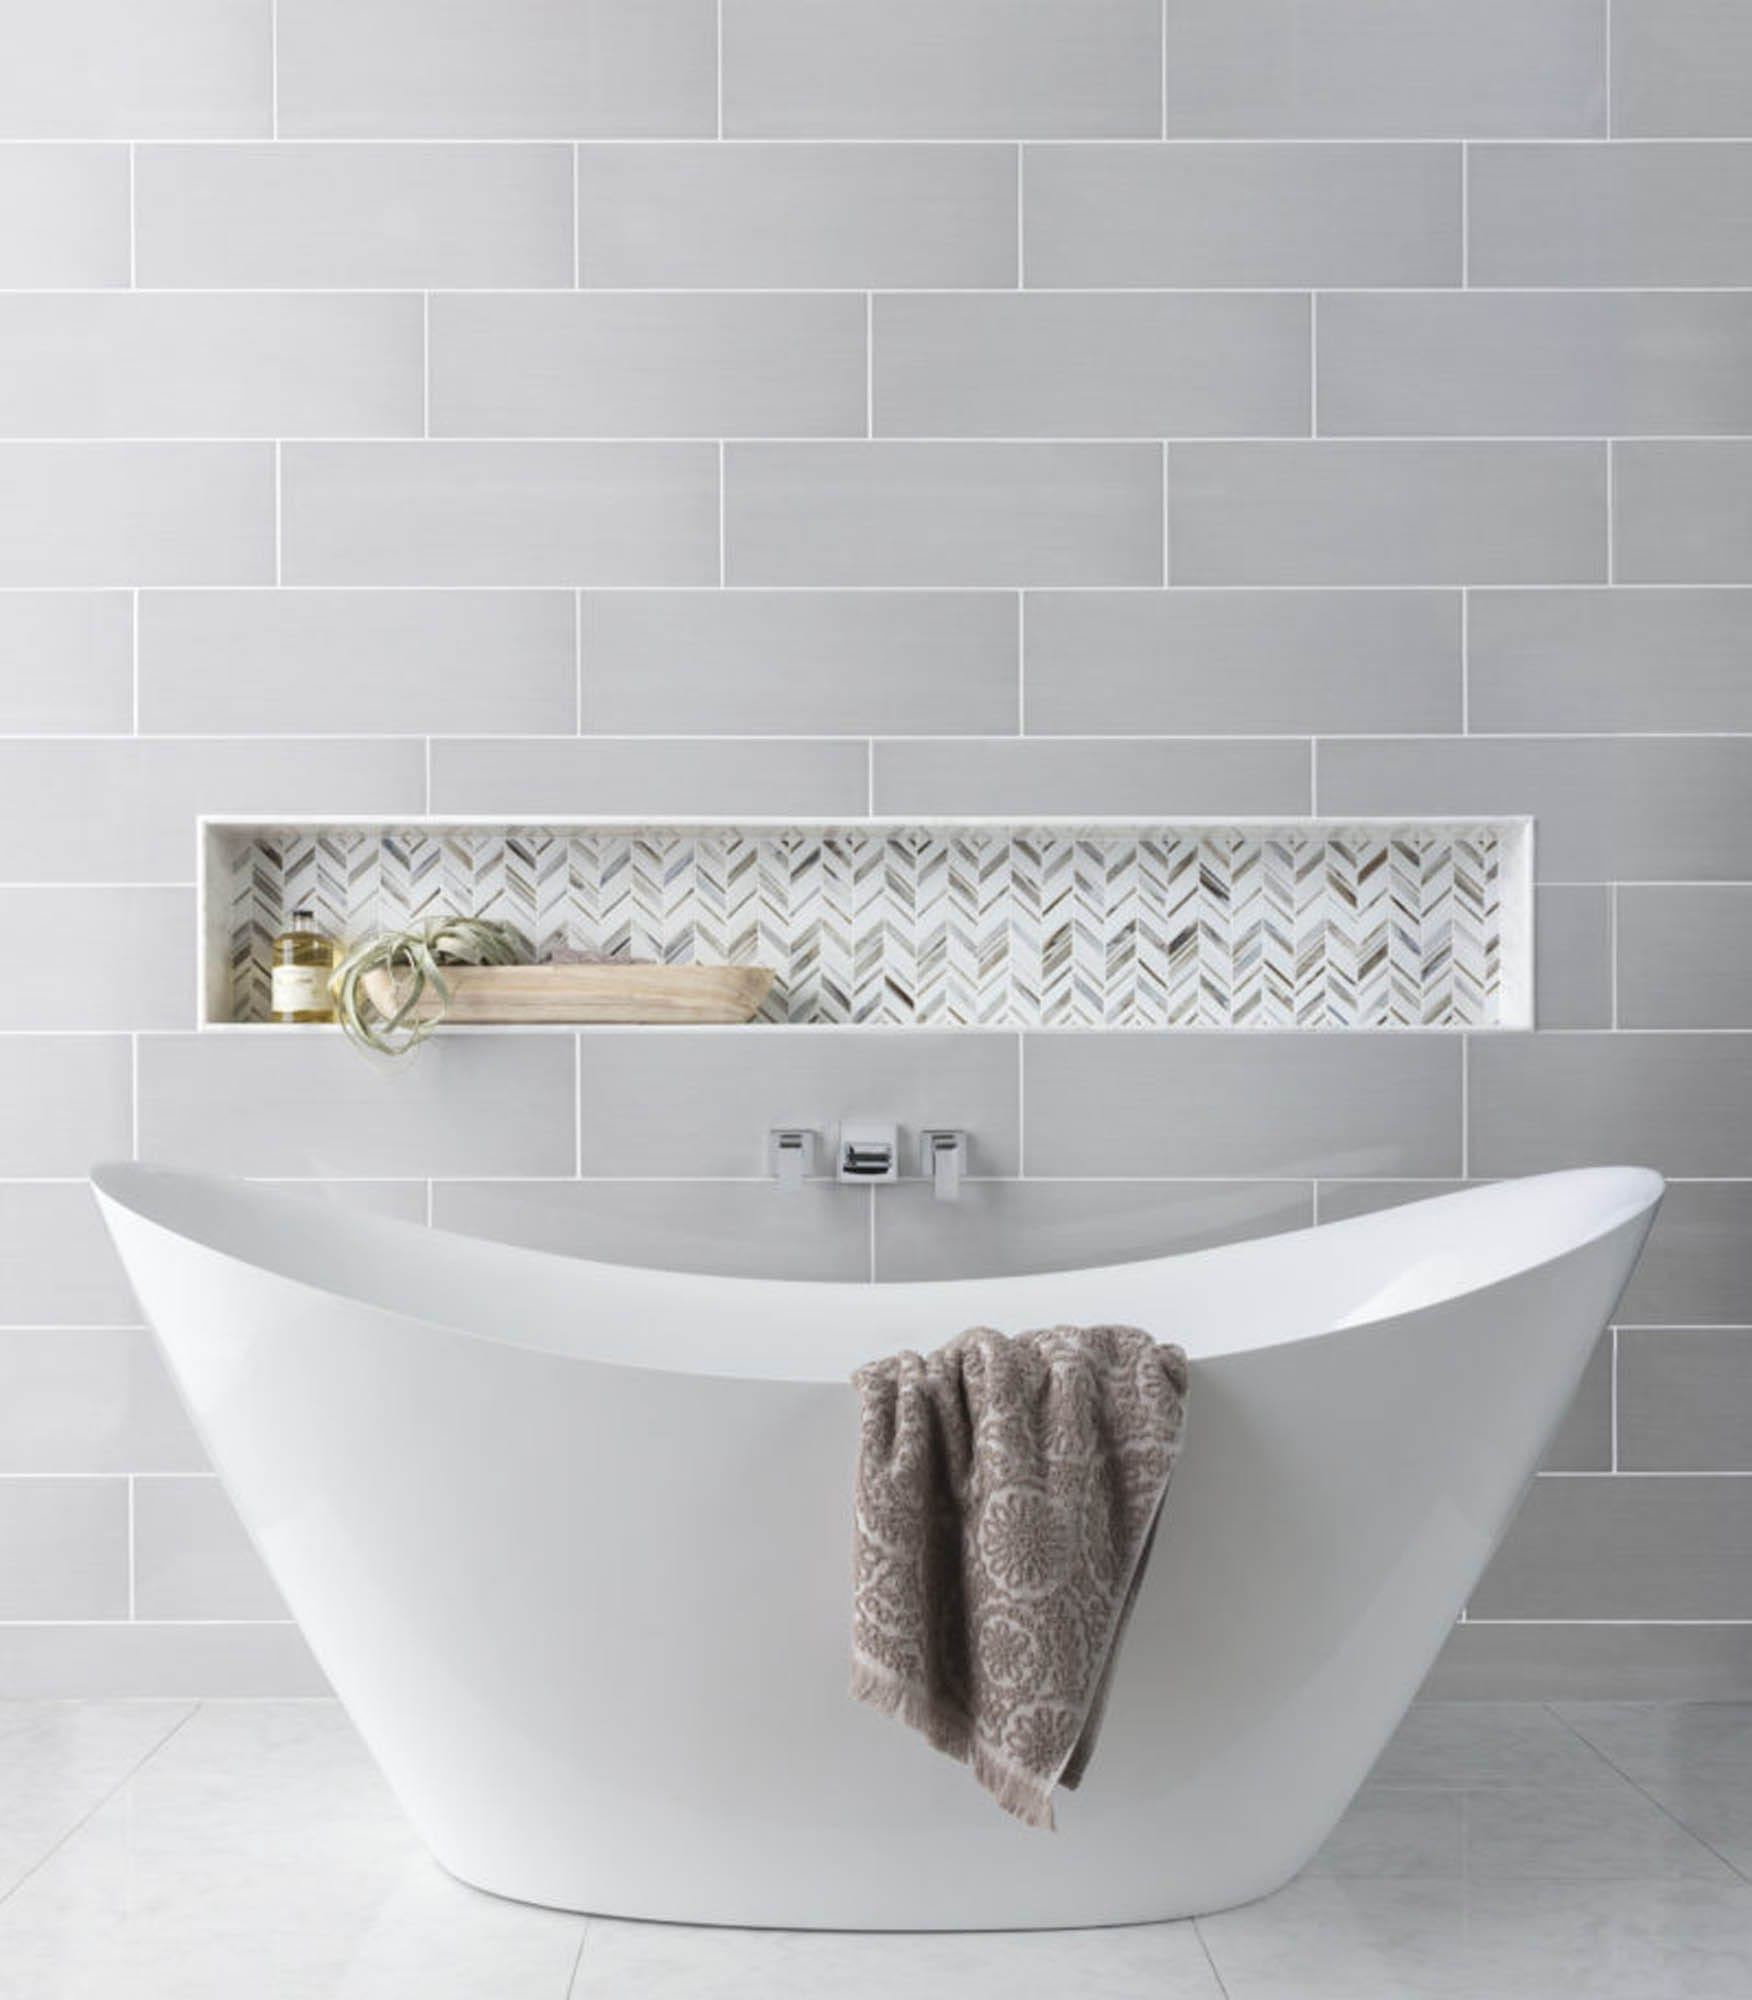 Elegant sculptural tub